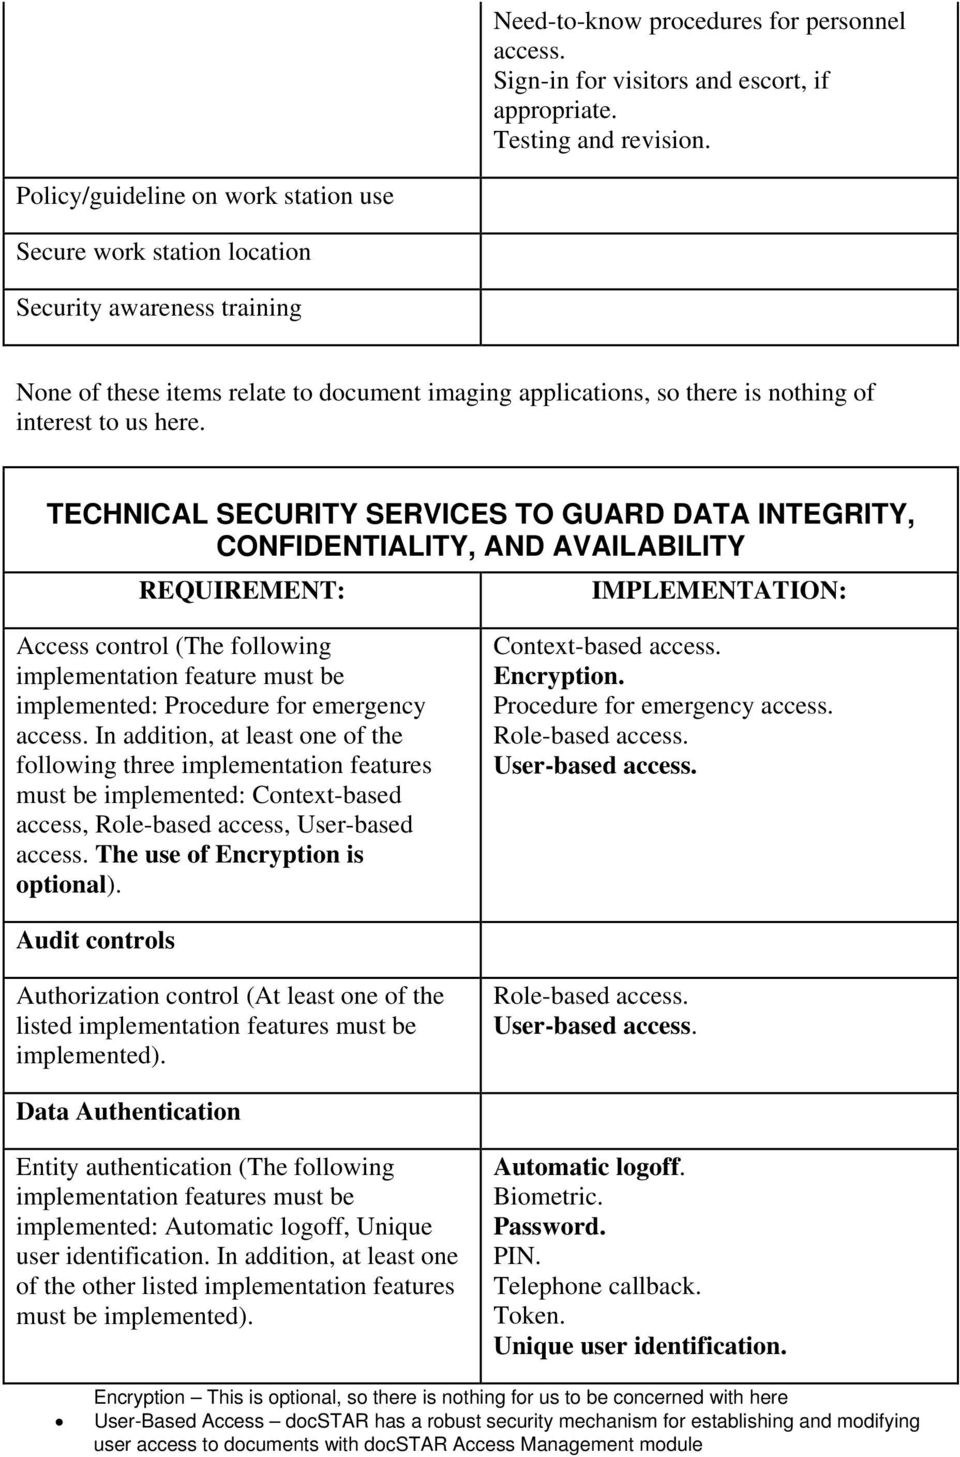 TECHNICAL SECURITY SERVICES TO GUARD DATA INTEGRITY, CONFIDENTIALITY, AND AVAILABILITY Access control (The following implementation feature must be implemented: Procedure for emergency access.